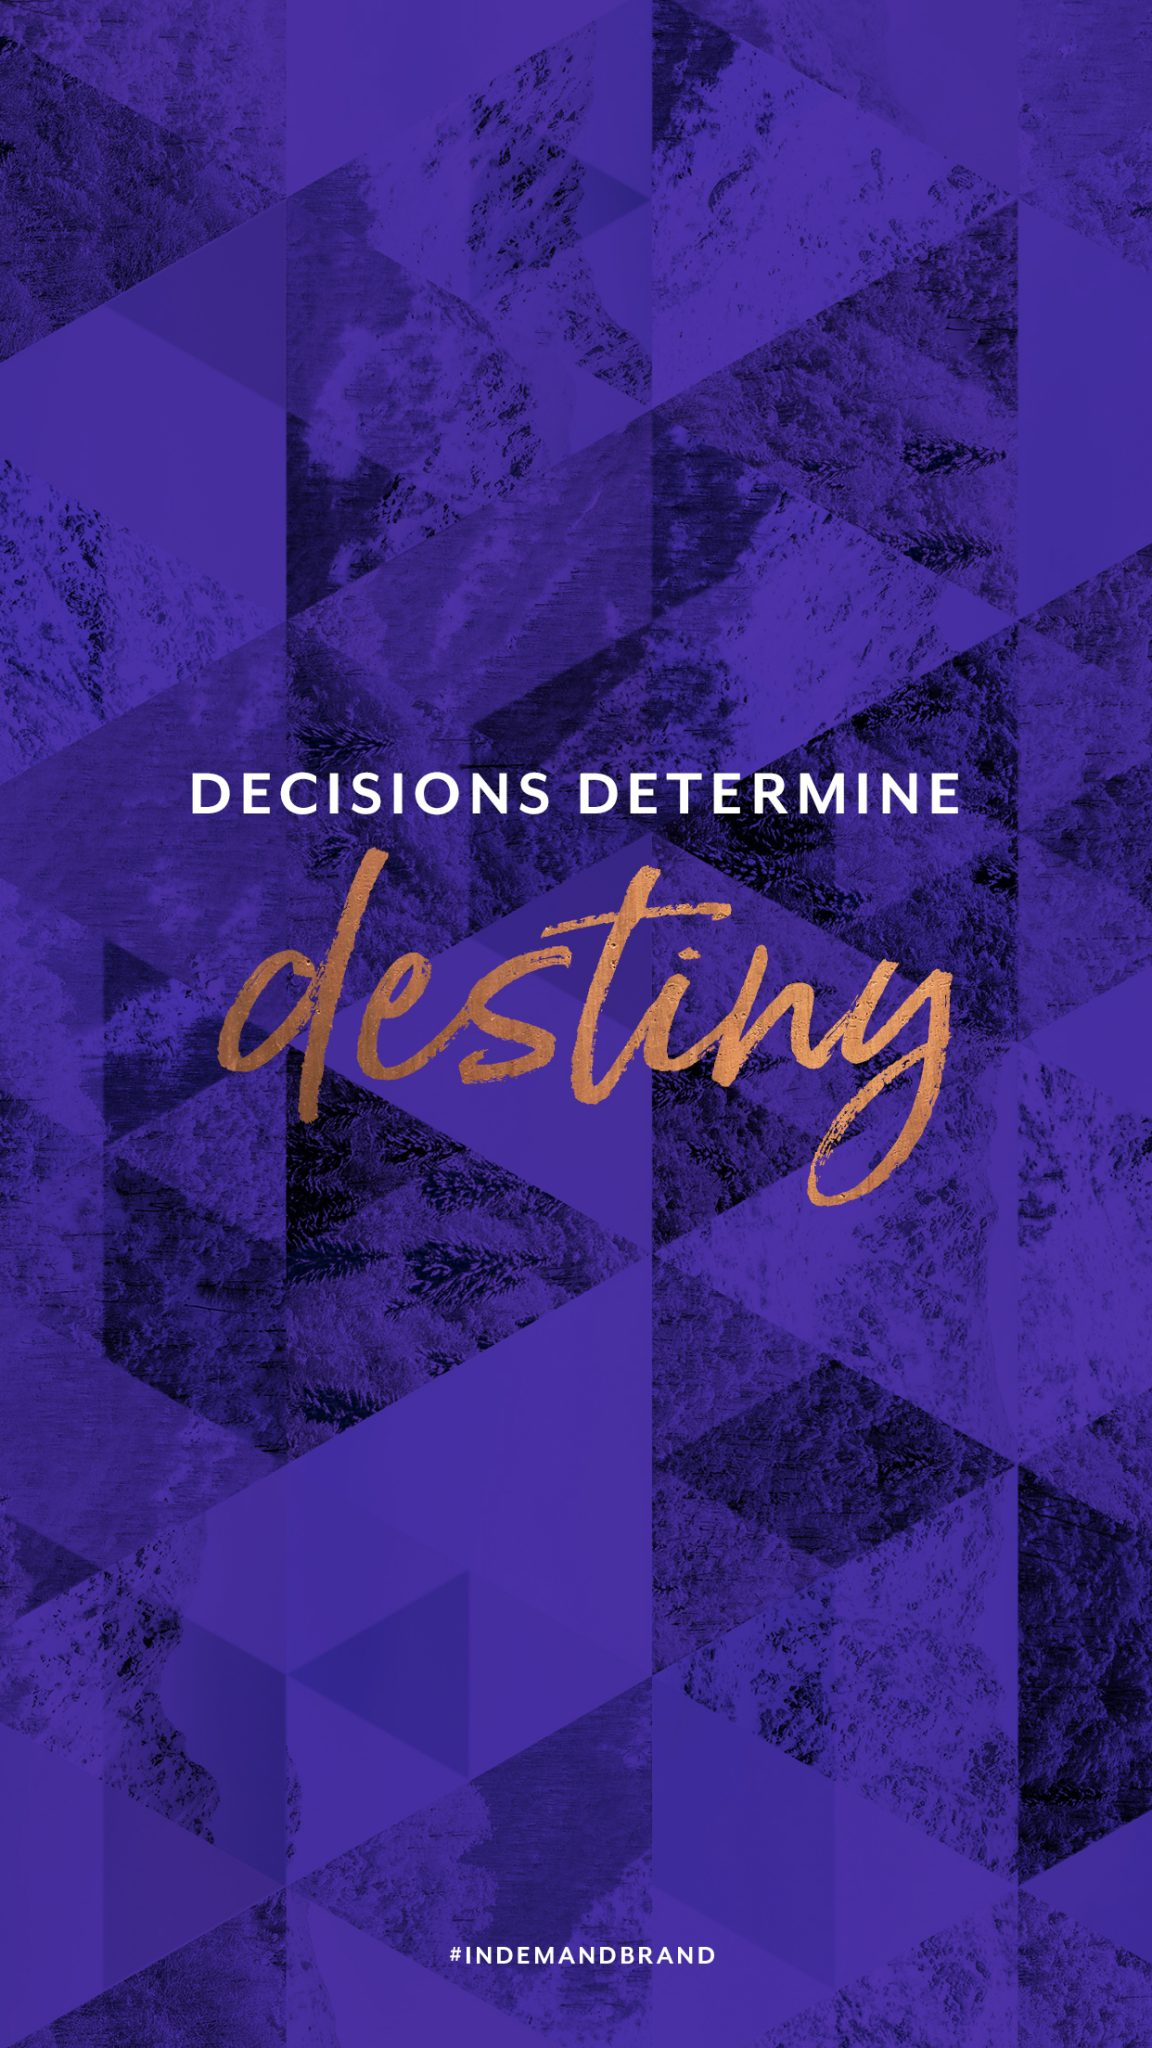 Decisions determine destiny. #InDemandBrand